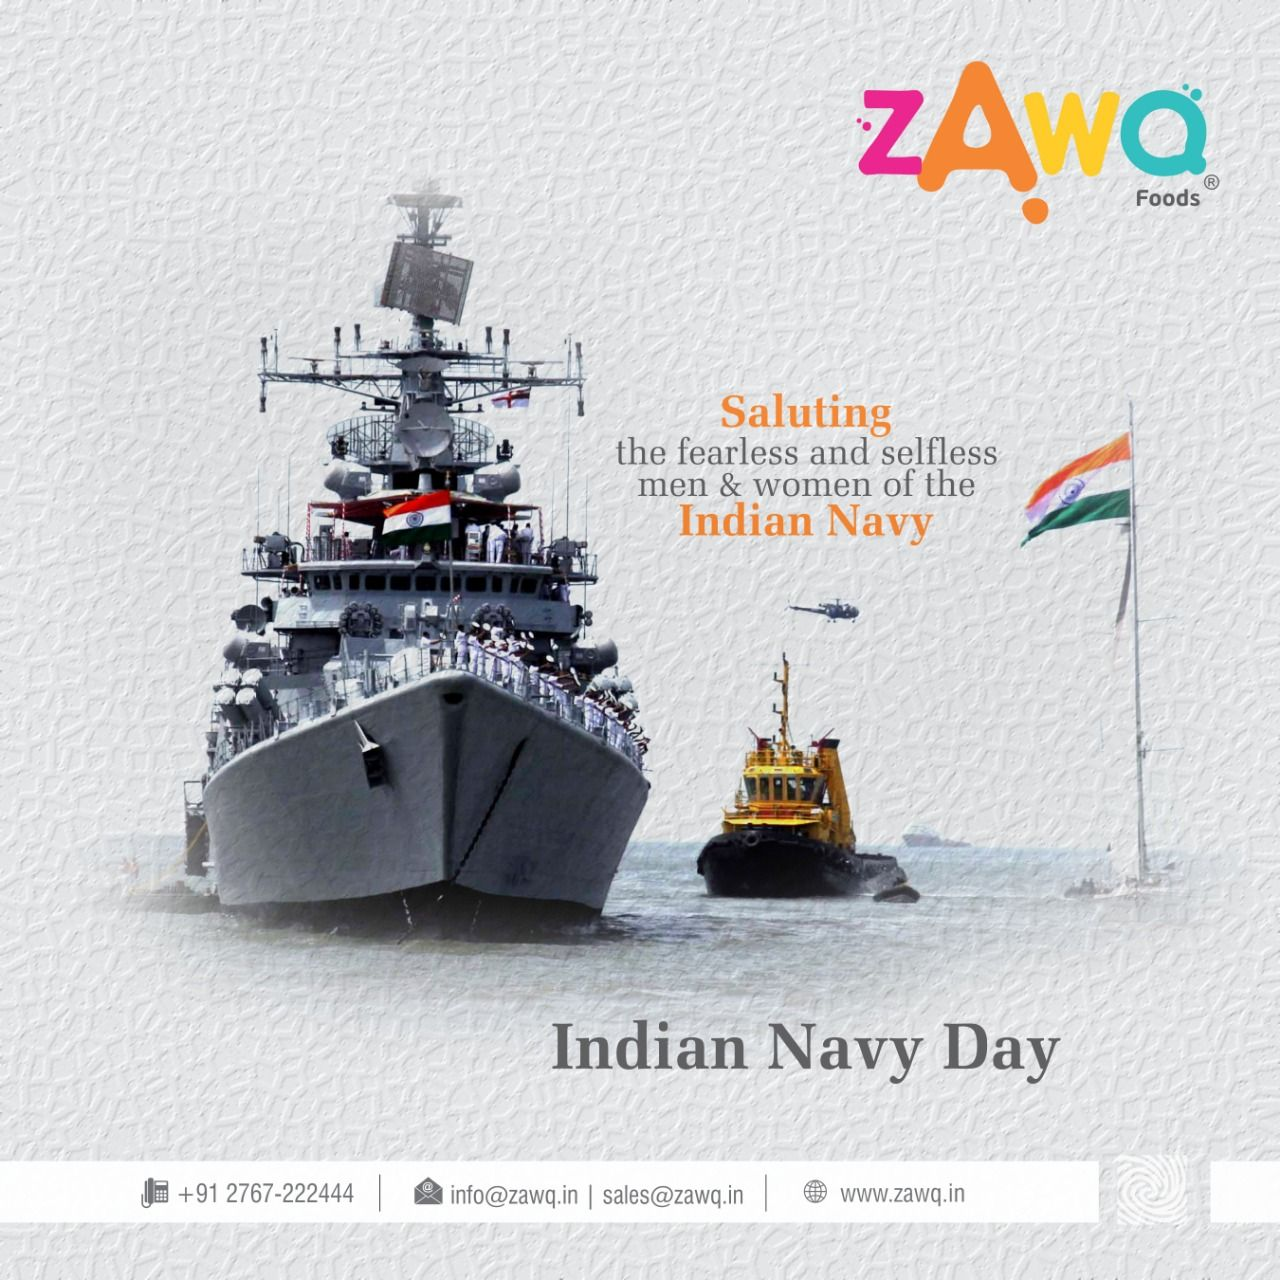 Saluting The Fearless And Selfless Men Women Of The Indian Navy Navy Day Of India Zawq Namkeen Instafood Snacks Foods Indian Navy Day Navy Day Image